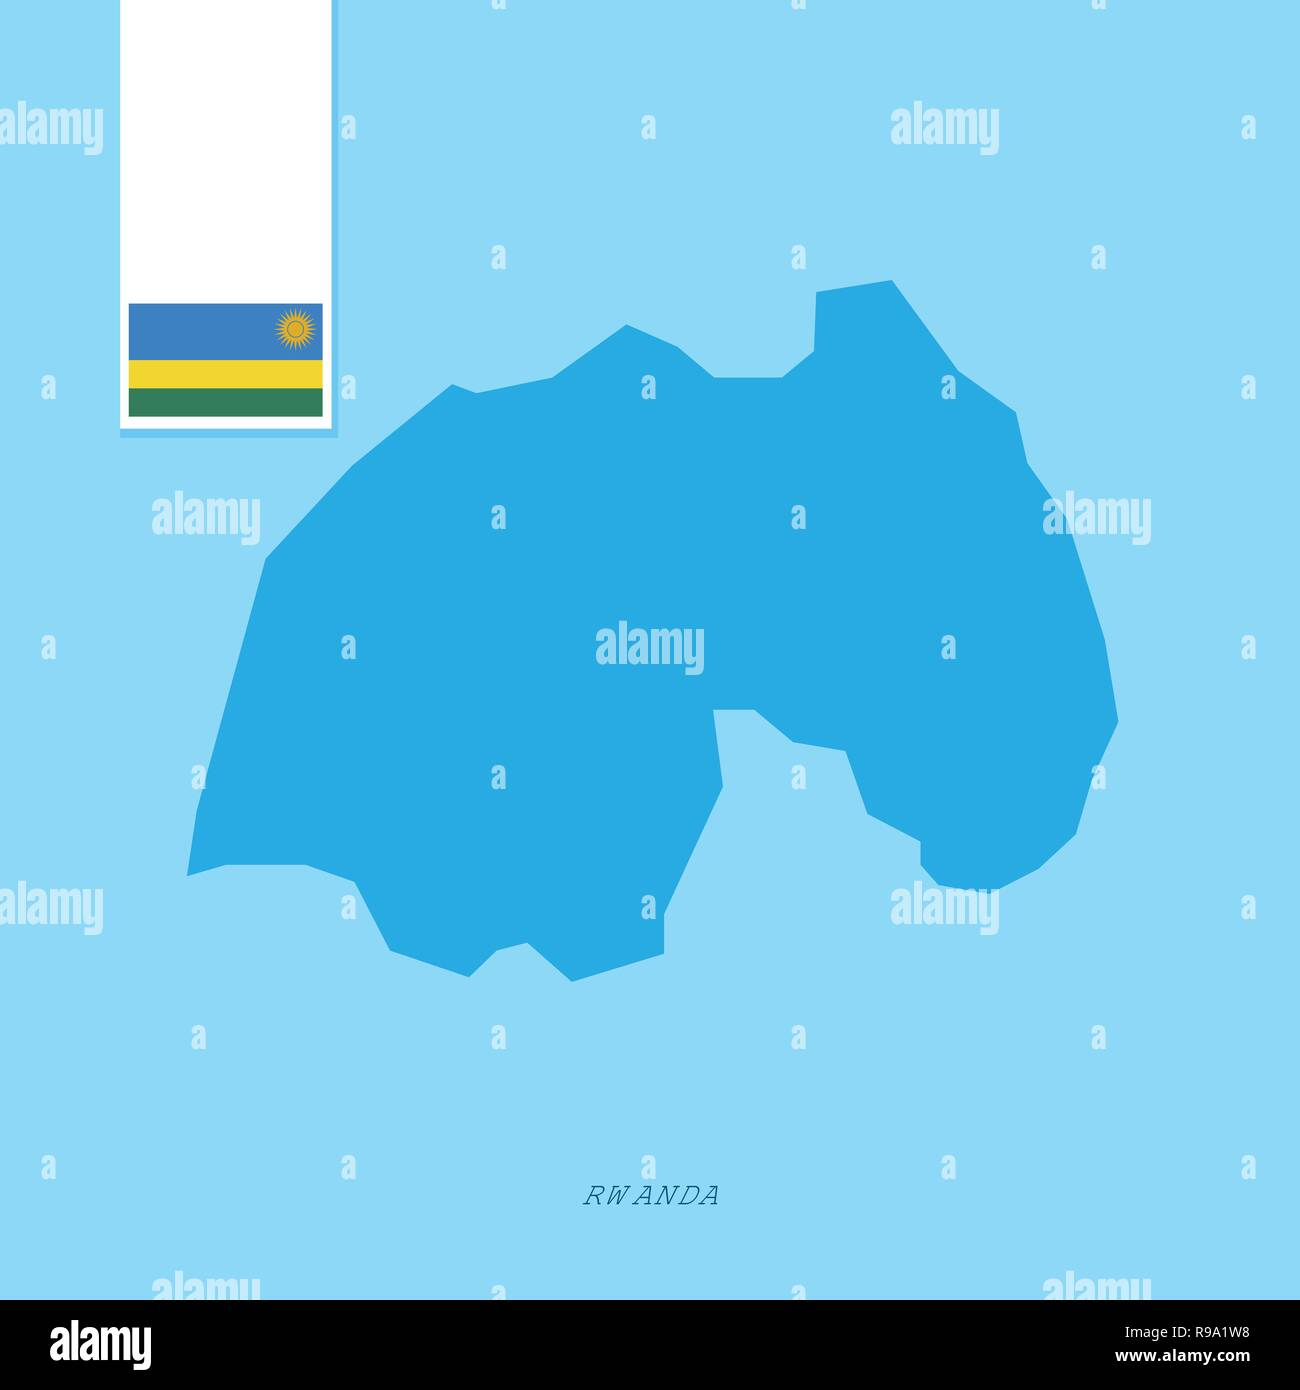 Rwanda Country Map with Flag over Blue background - Stock Vector